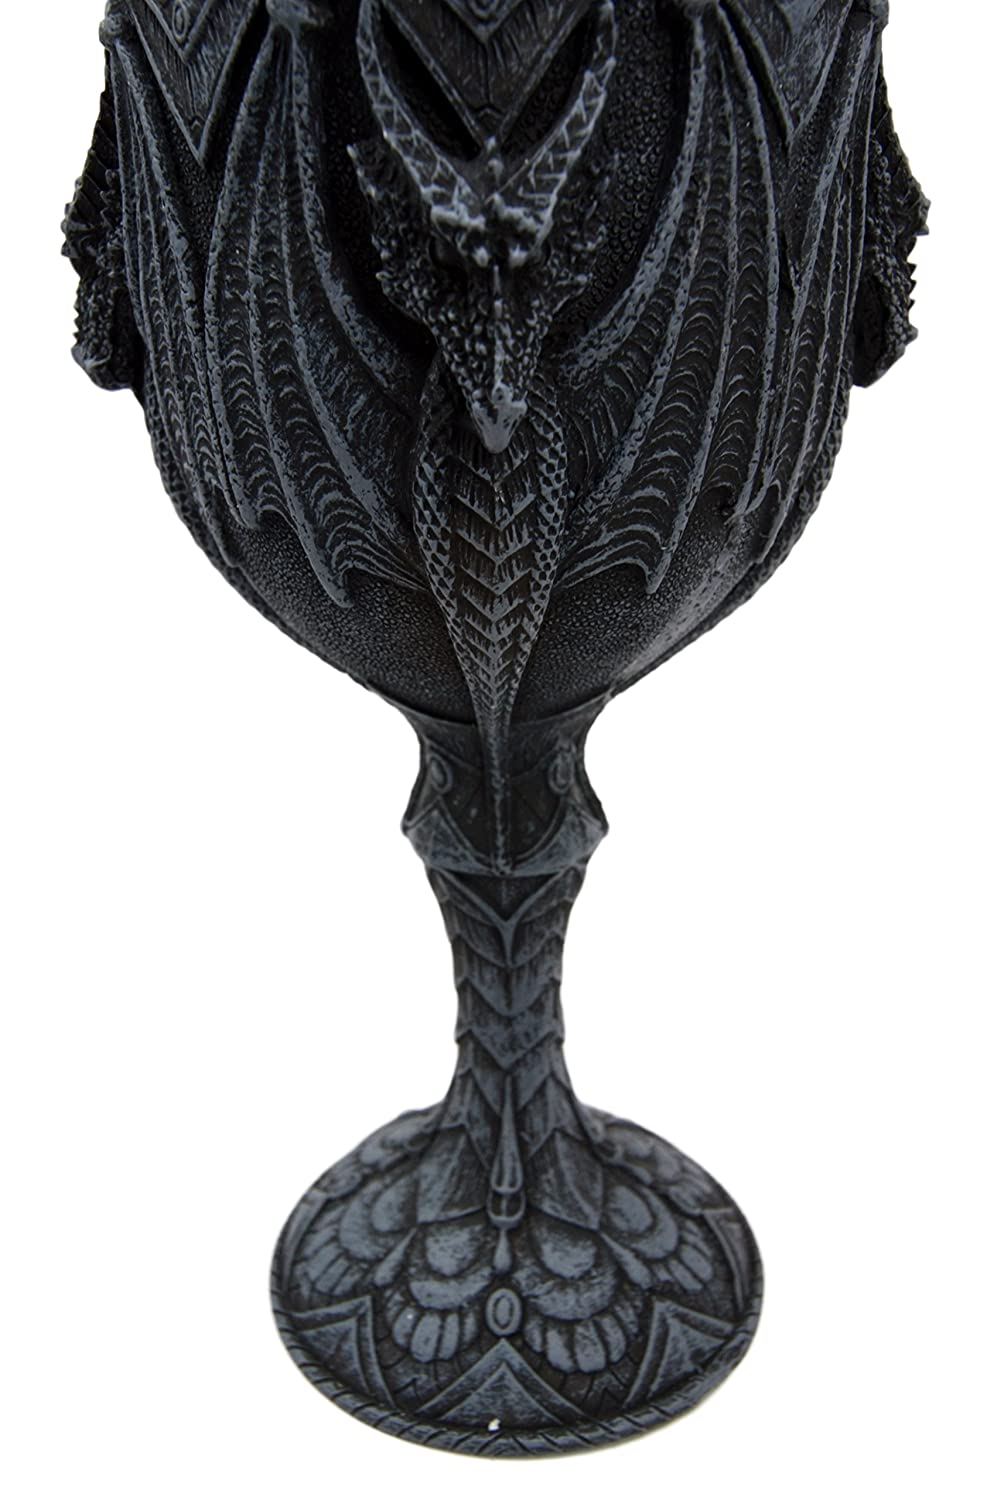 Atlantic Collectibles Winged Terror of The Sky Beowl Dragon 7H Wine Goblet Cup Chalice